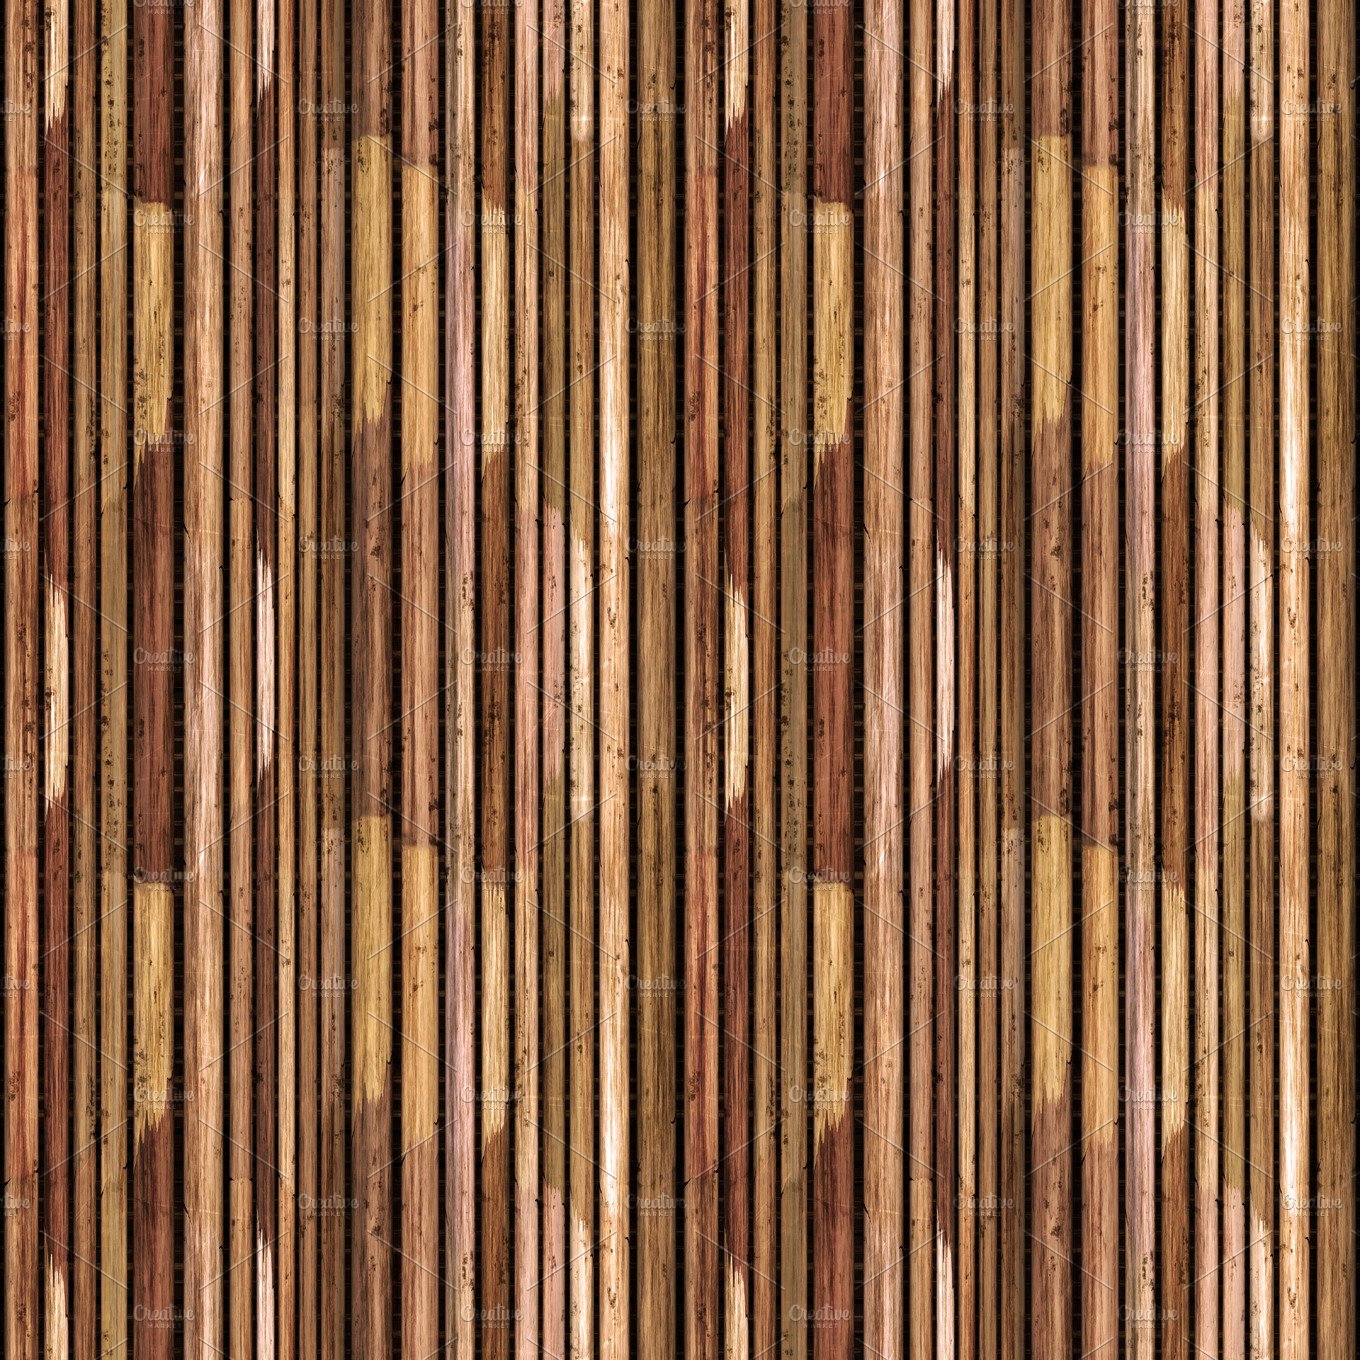 Seamless Bamboo Texture Nature Photos Creative Market